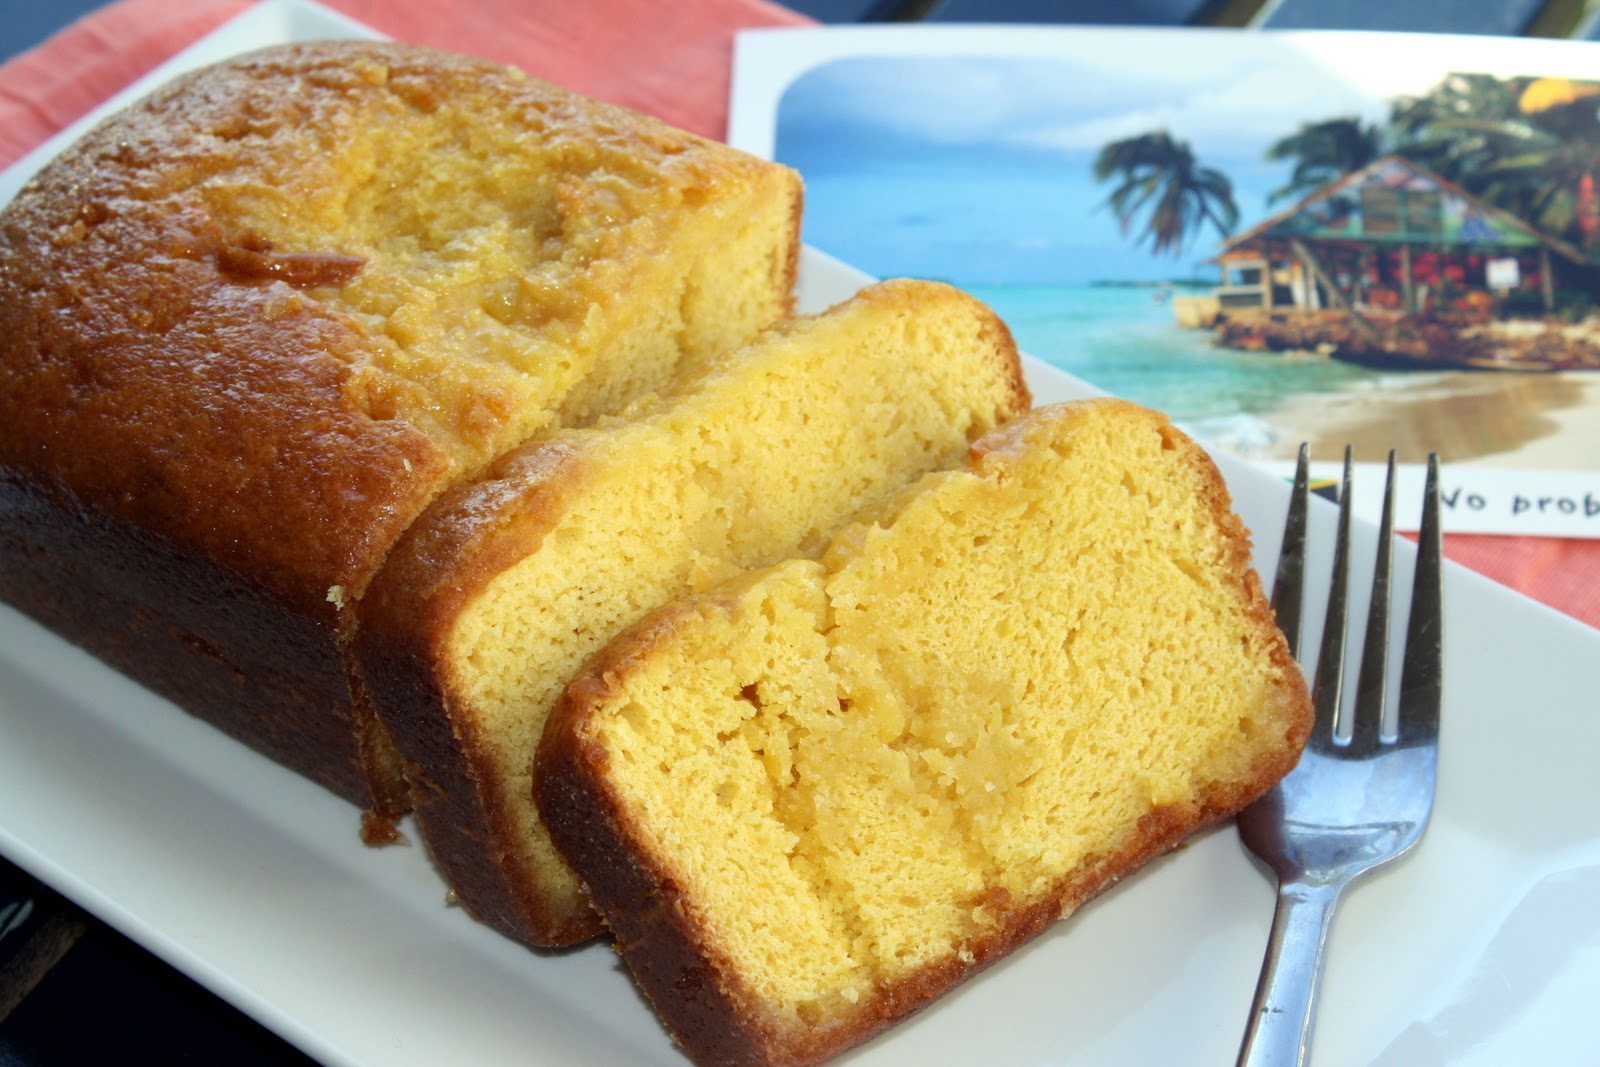 We tasted samples of rum cake while sight seeing in George Town and I ...